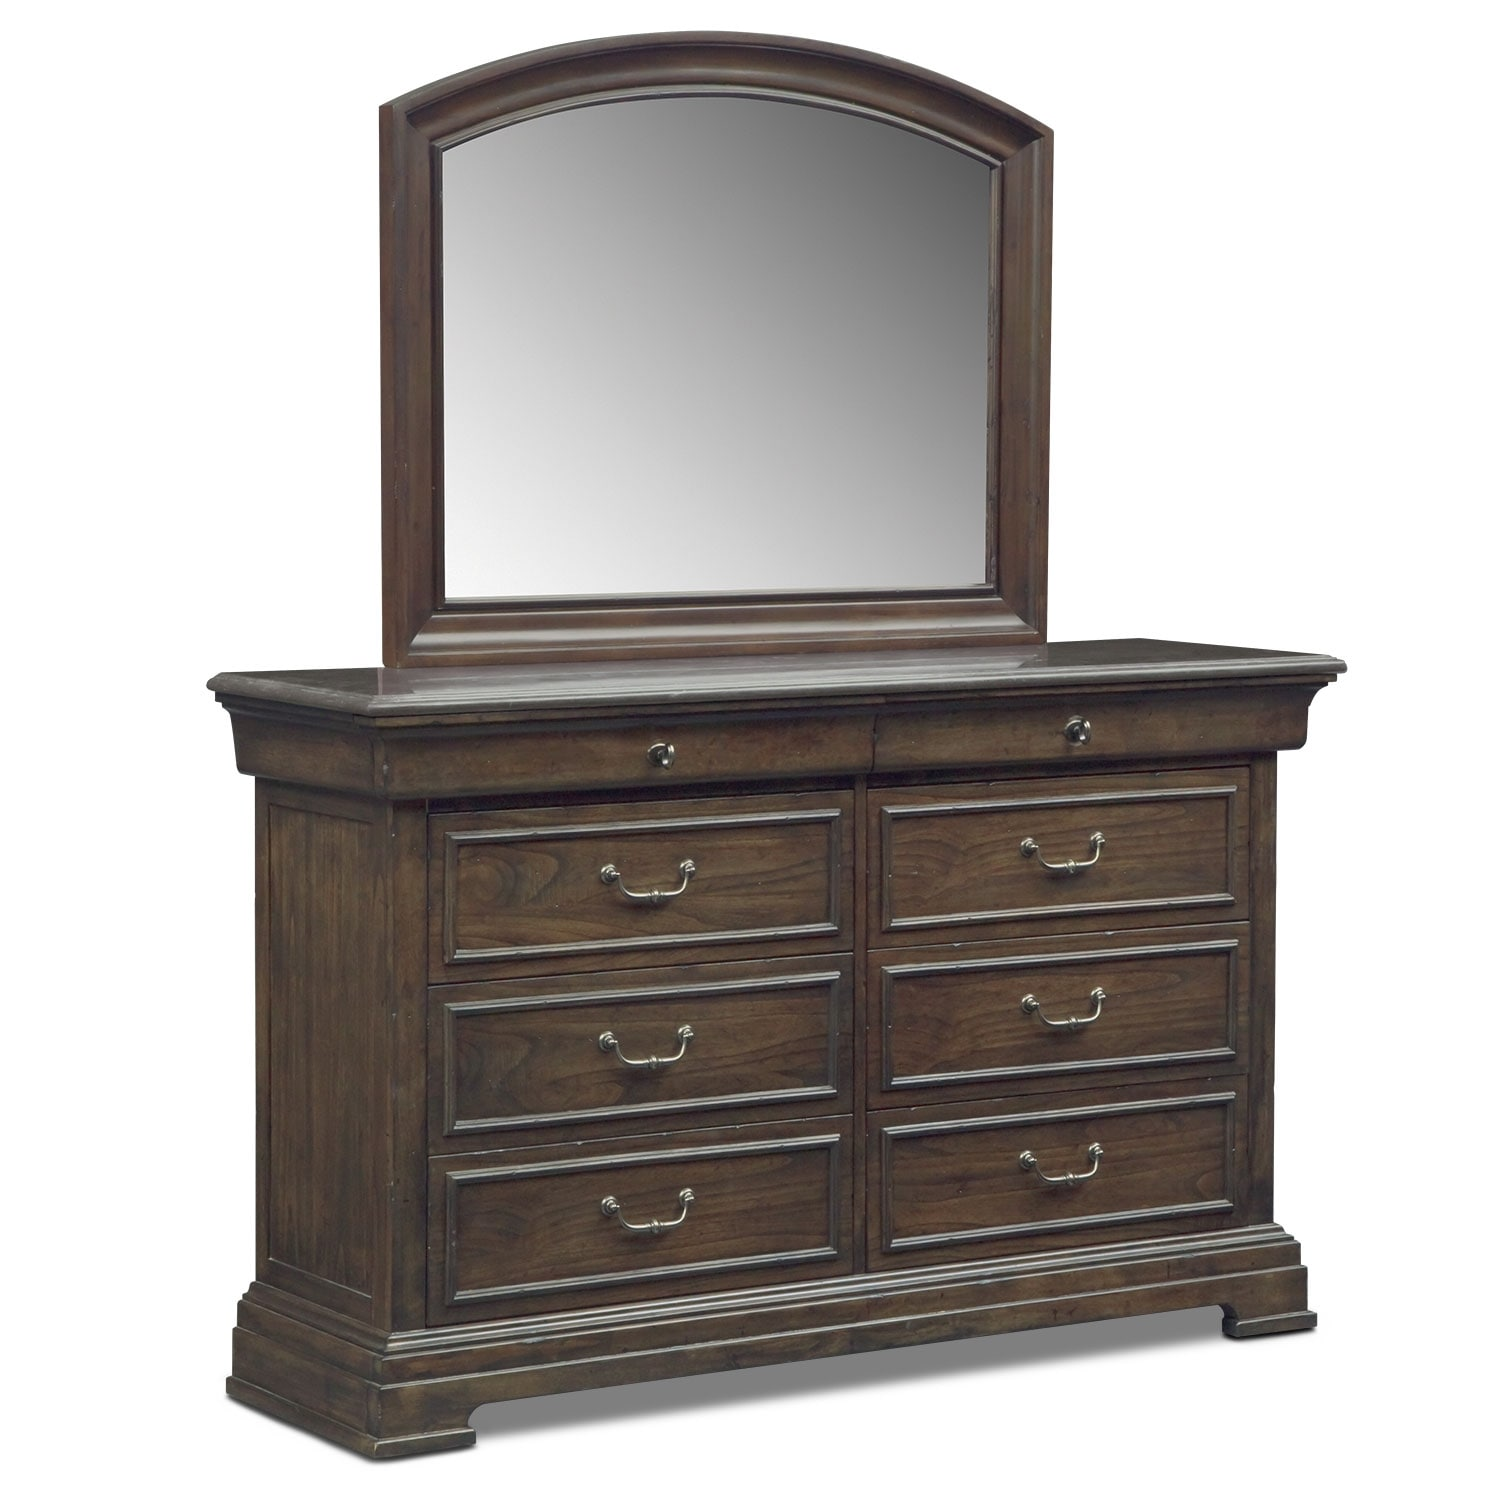 Collinwood Dresser & Mirror